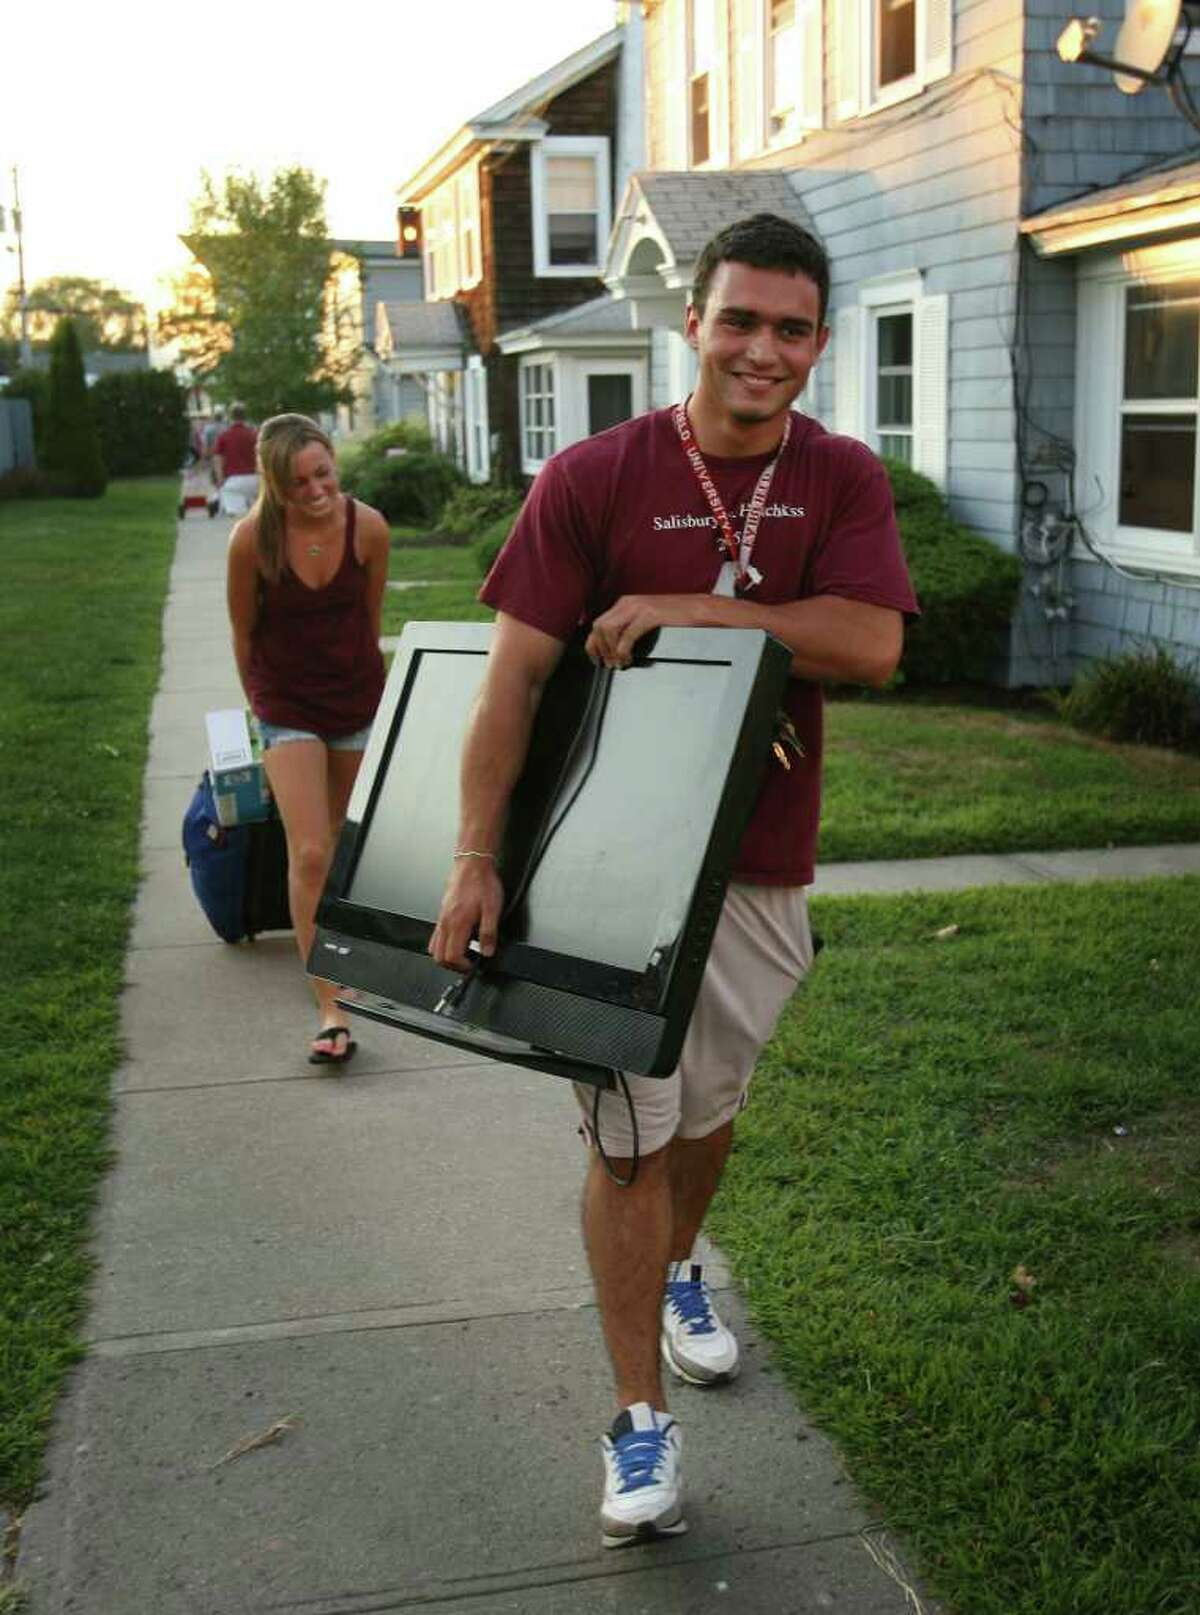 Fairfield University senior Mike Parent of Bethlehem, CT, carries his television to his rental house on Fairfield Beach on Monday, August 30, 2010.